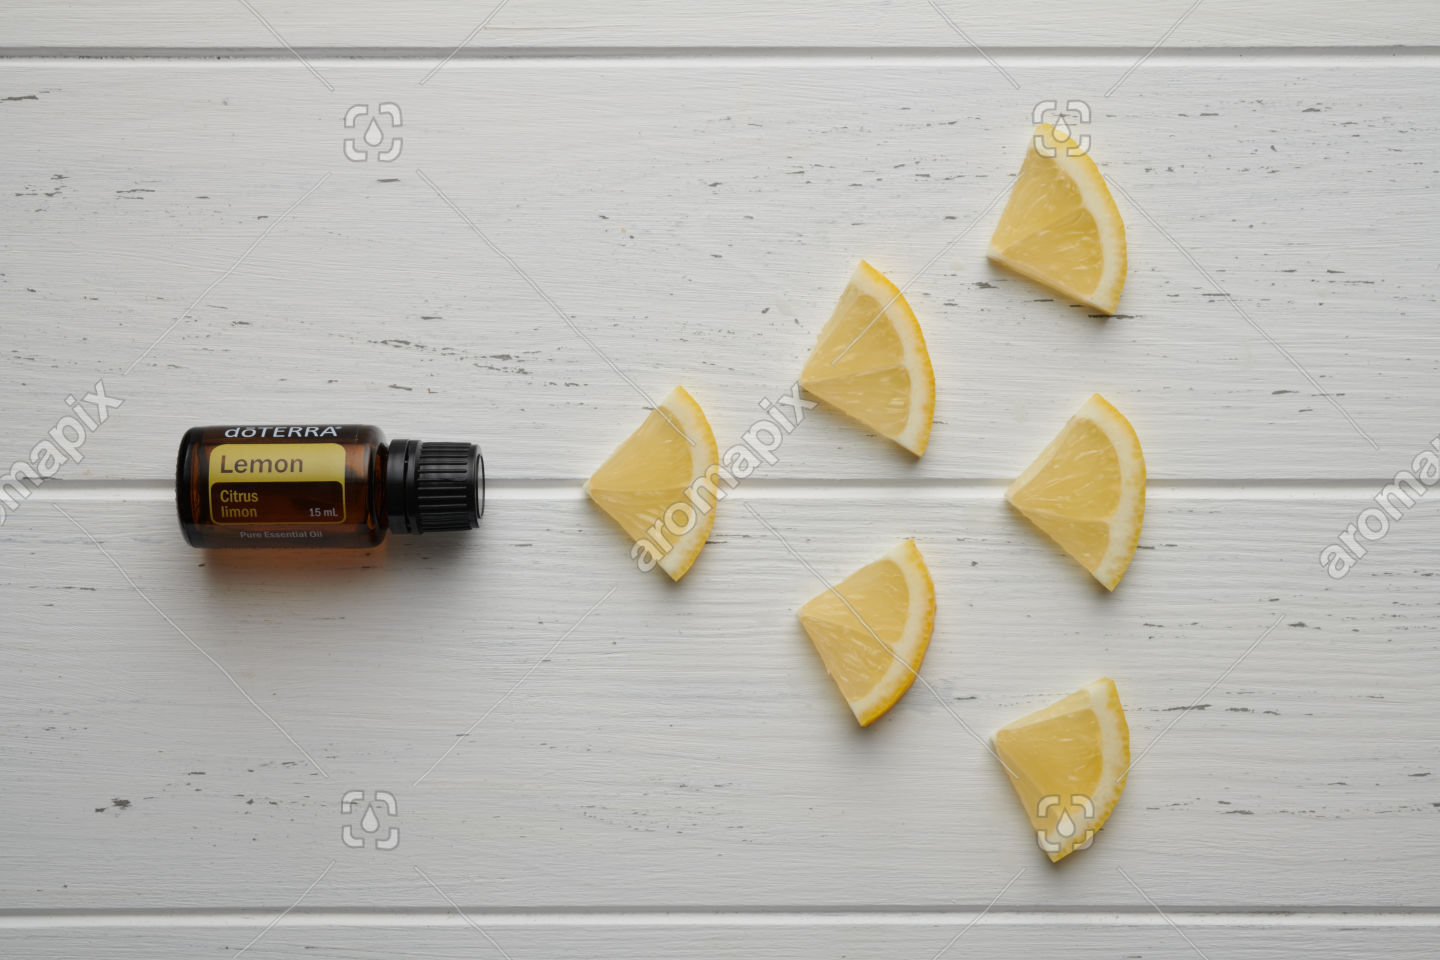 doTERRA Lemon product and pieces on white background